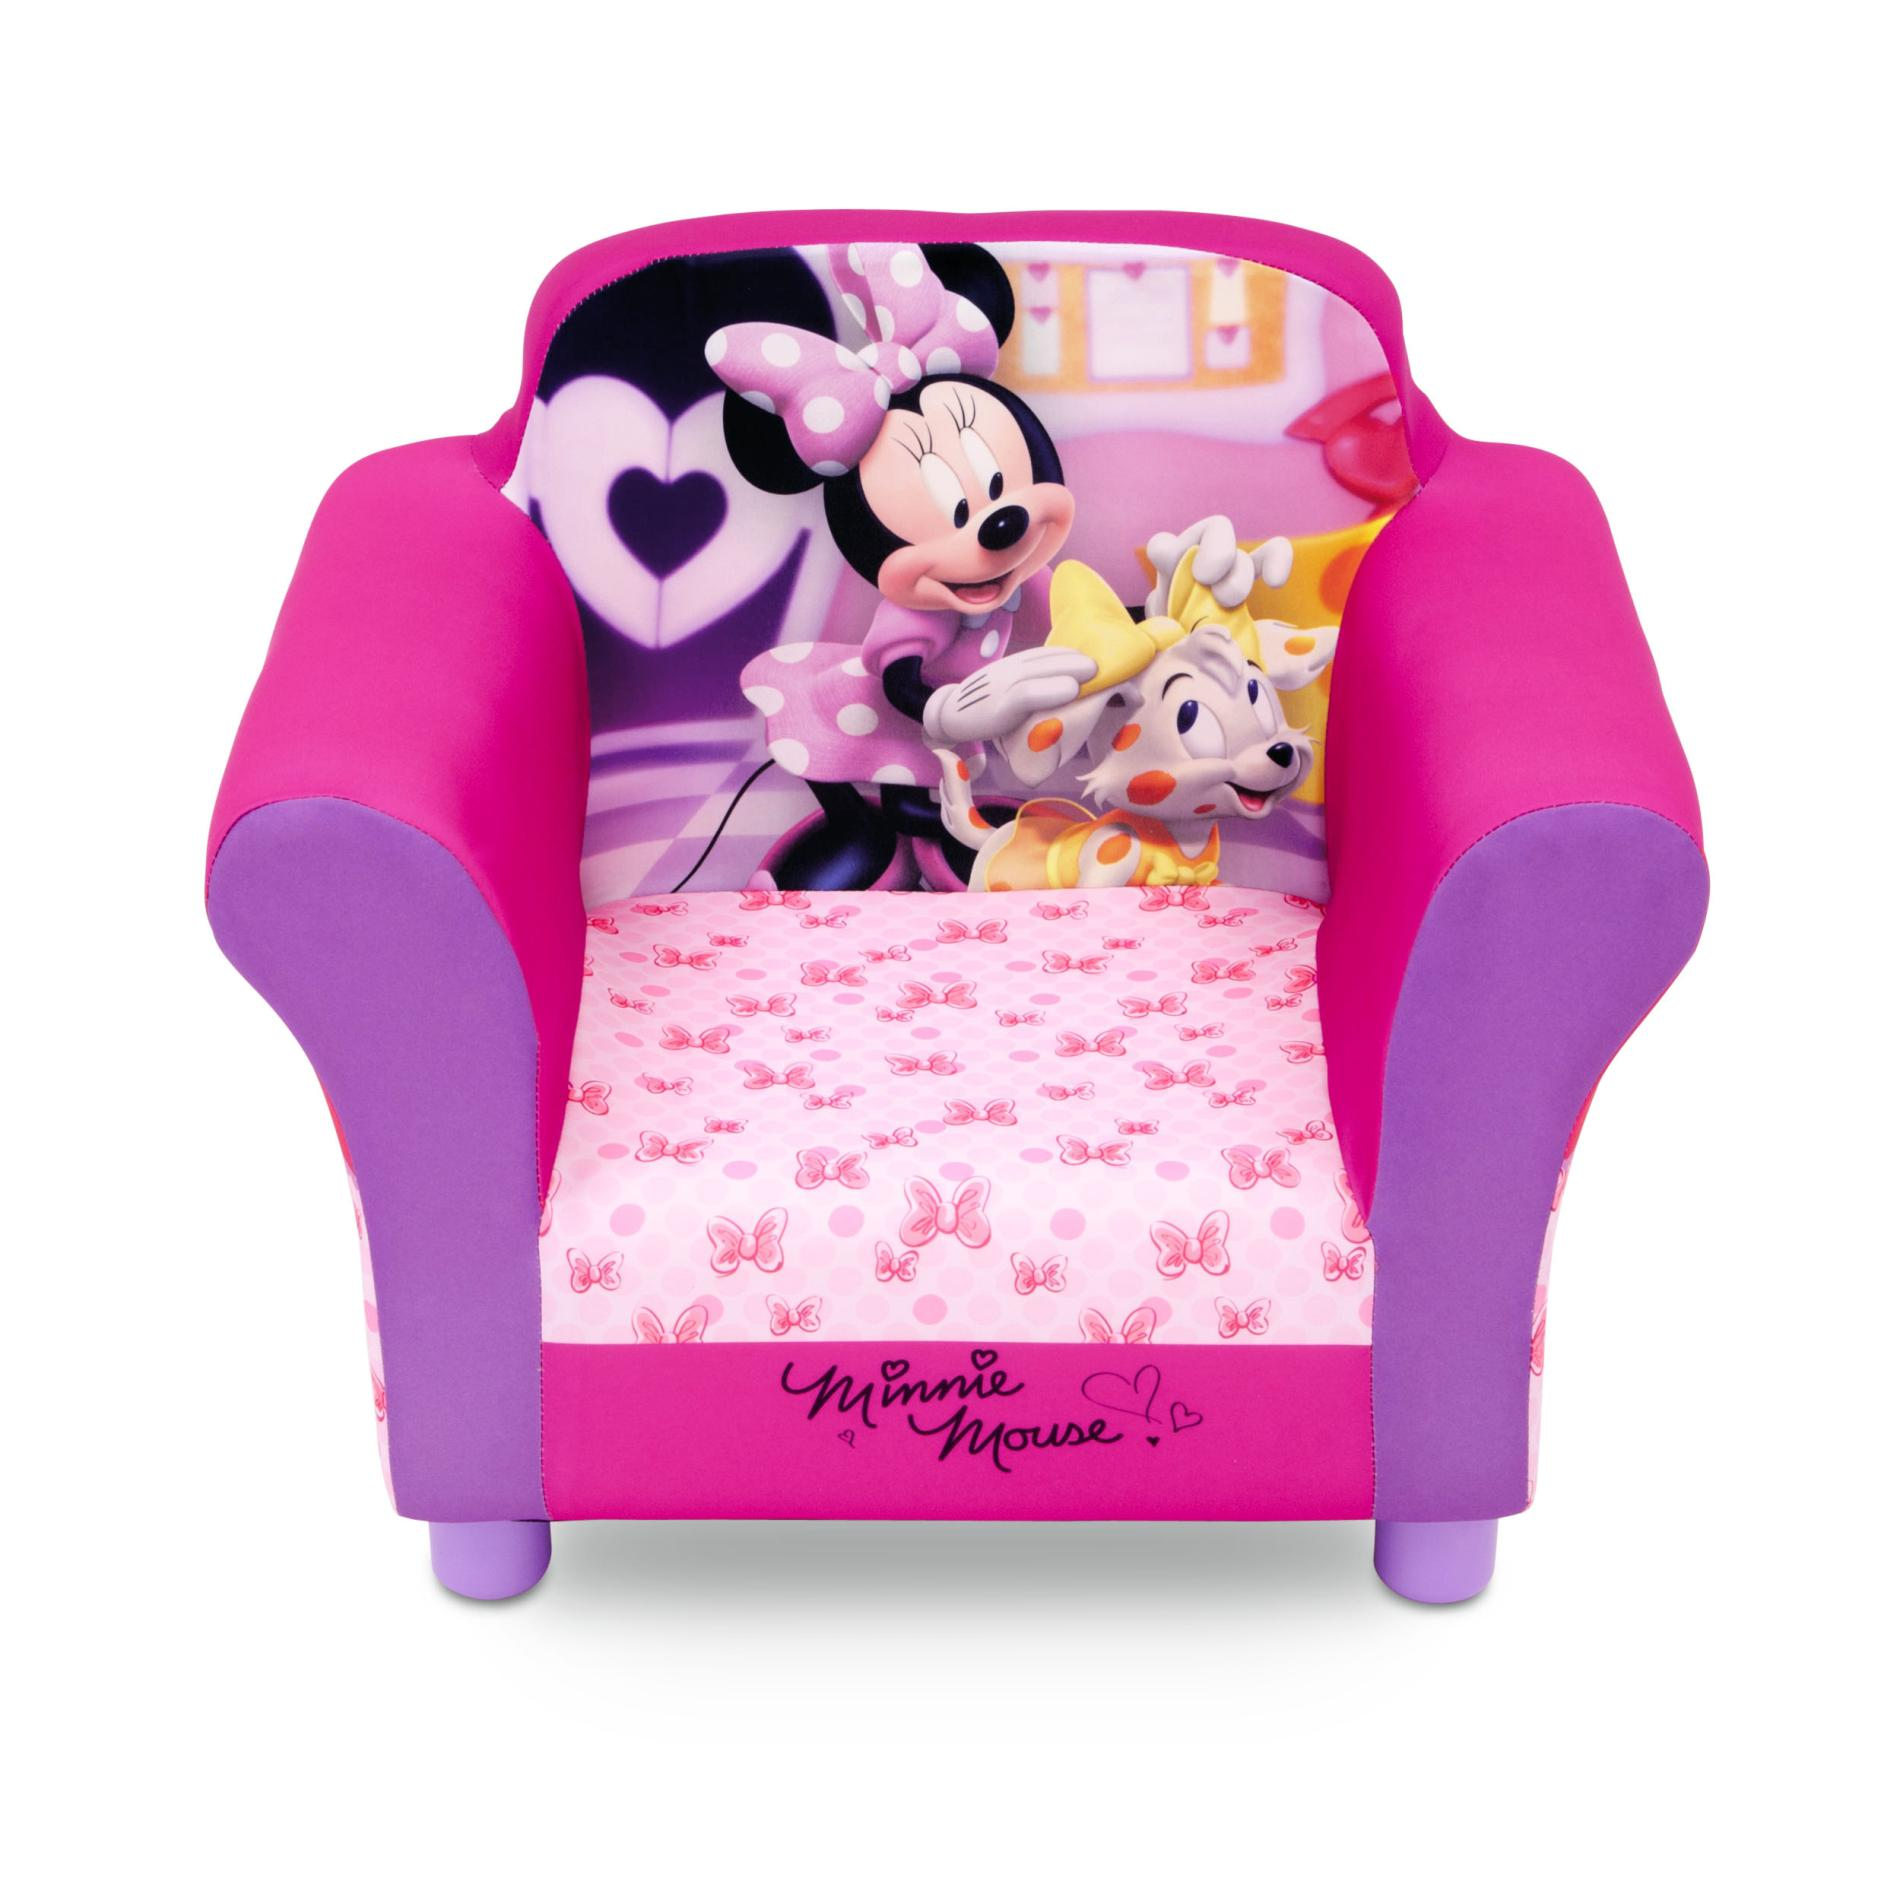 Toddler Couch Disney Toddler Girl 39s Upholstered Chair Minnie Mouse